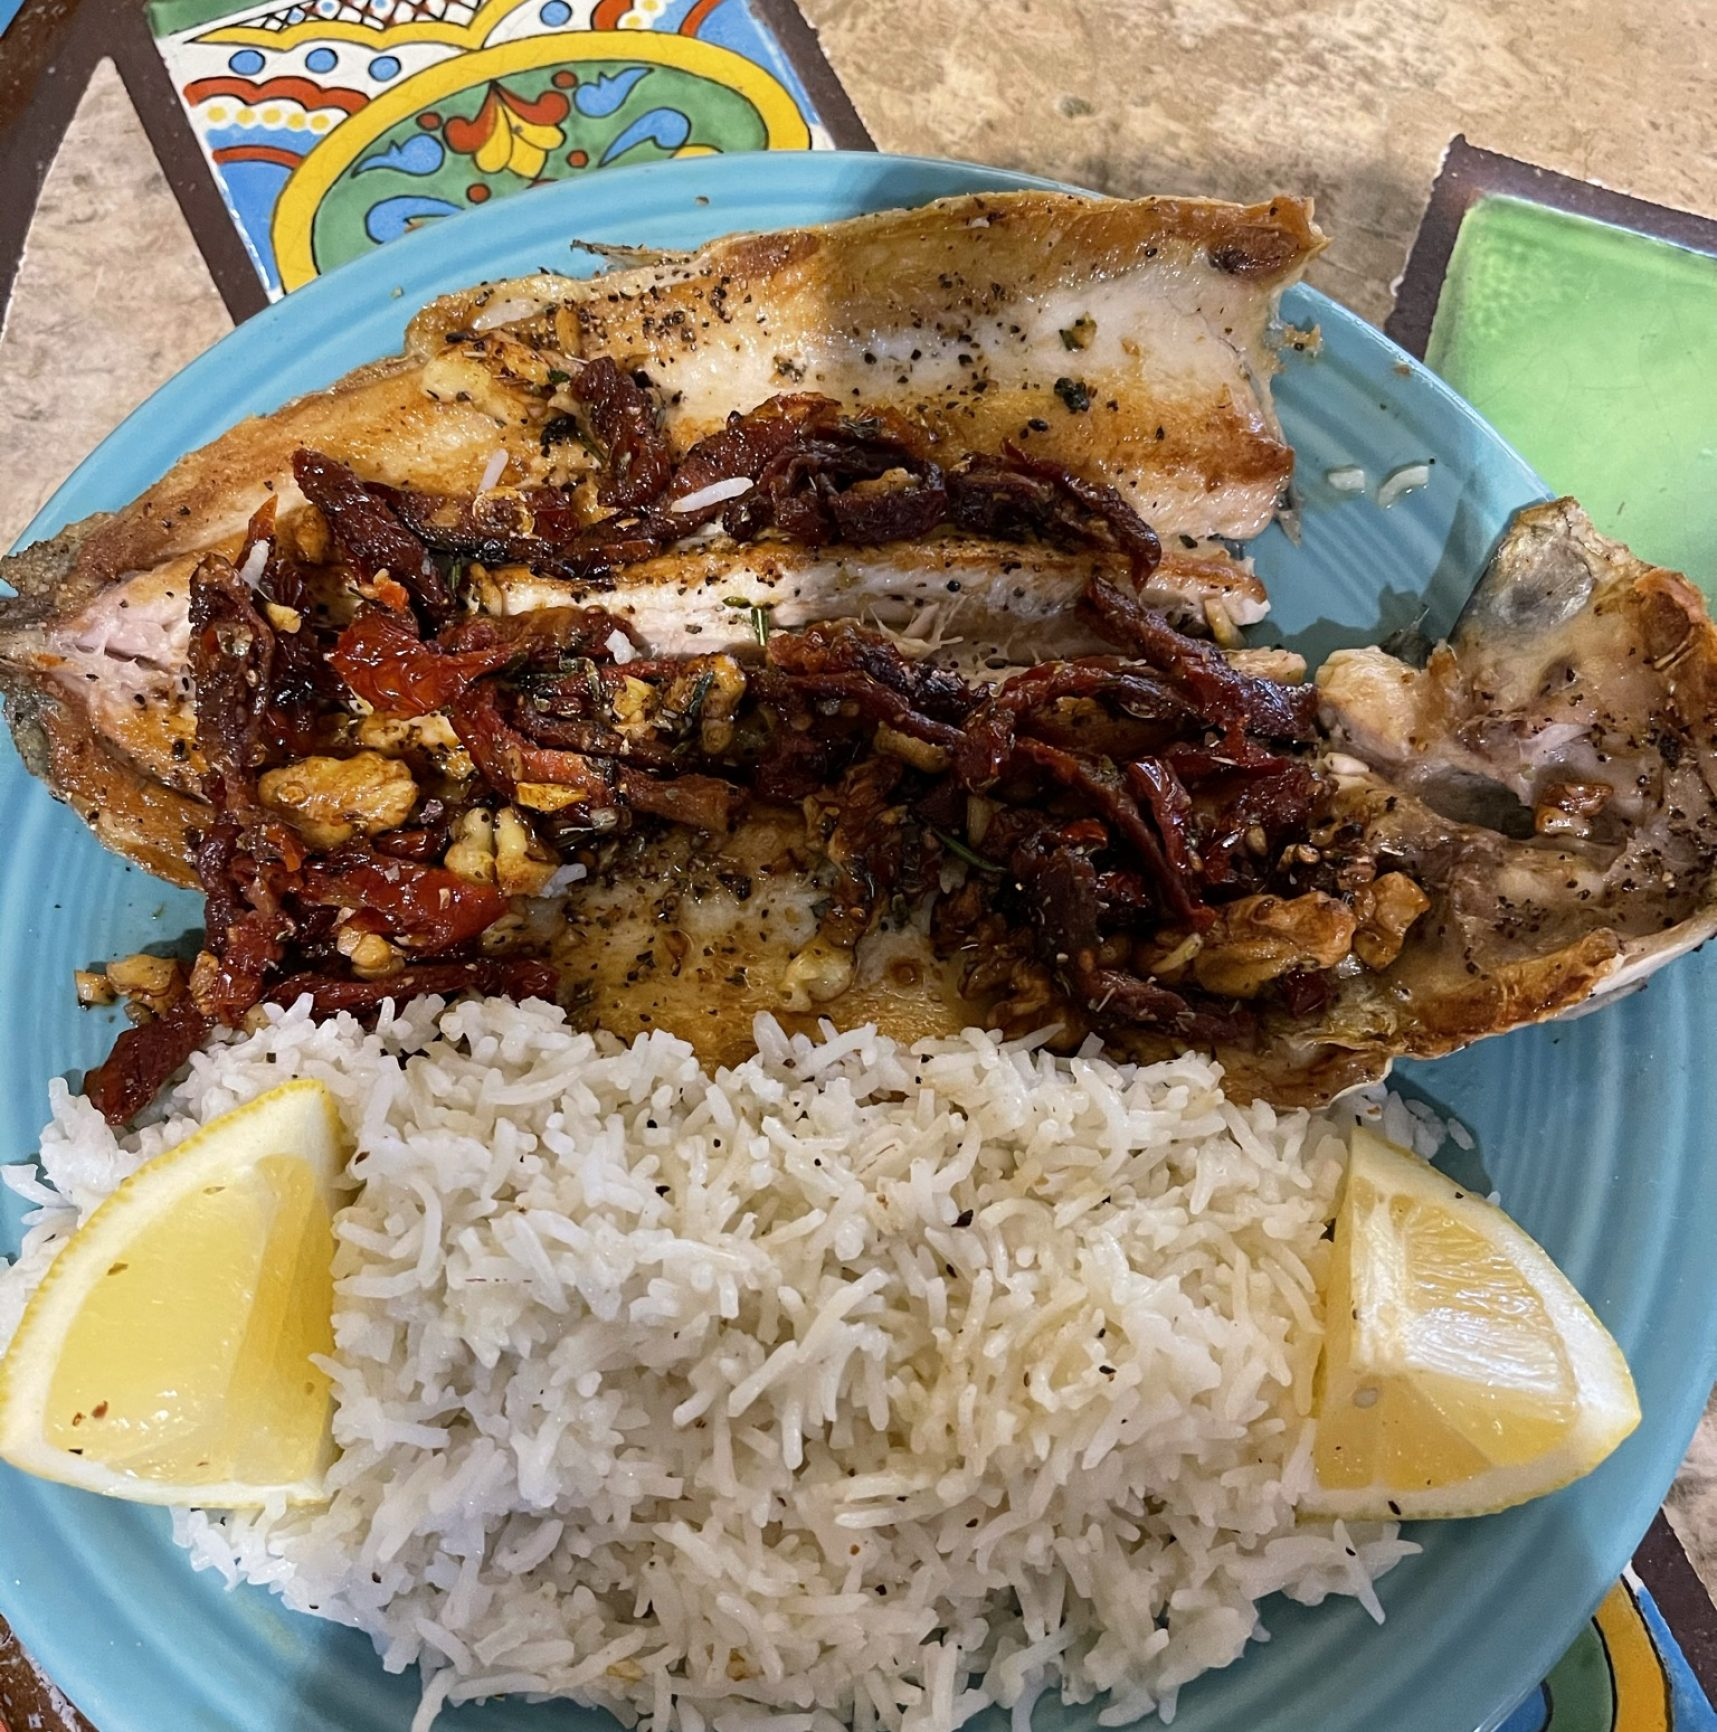 A head and tail on fish prepared to order. Seasoned with an array of flavors to include fennel, lemon, garlic and herbs. Served on a bed of rice.